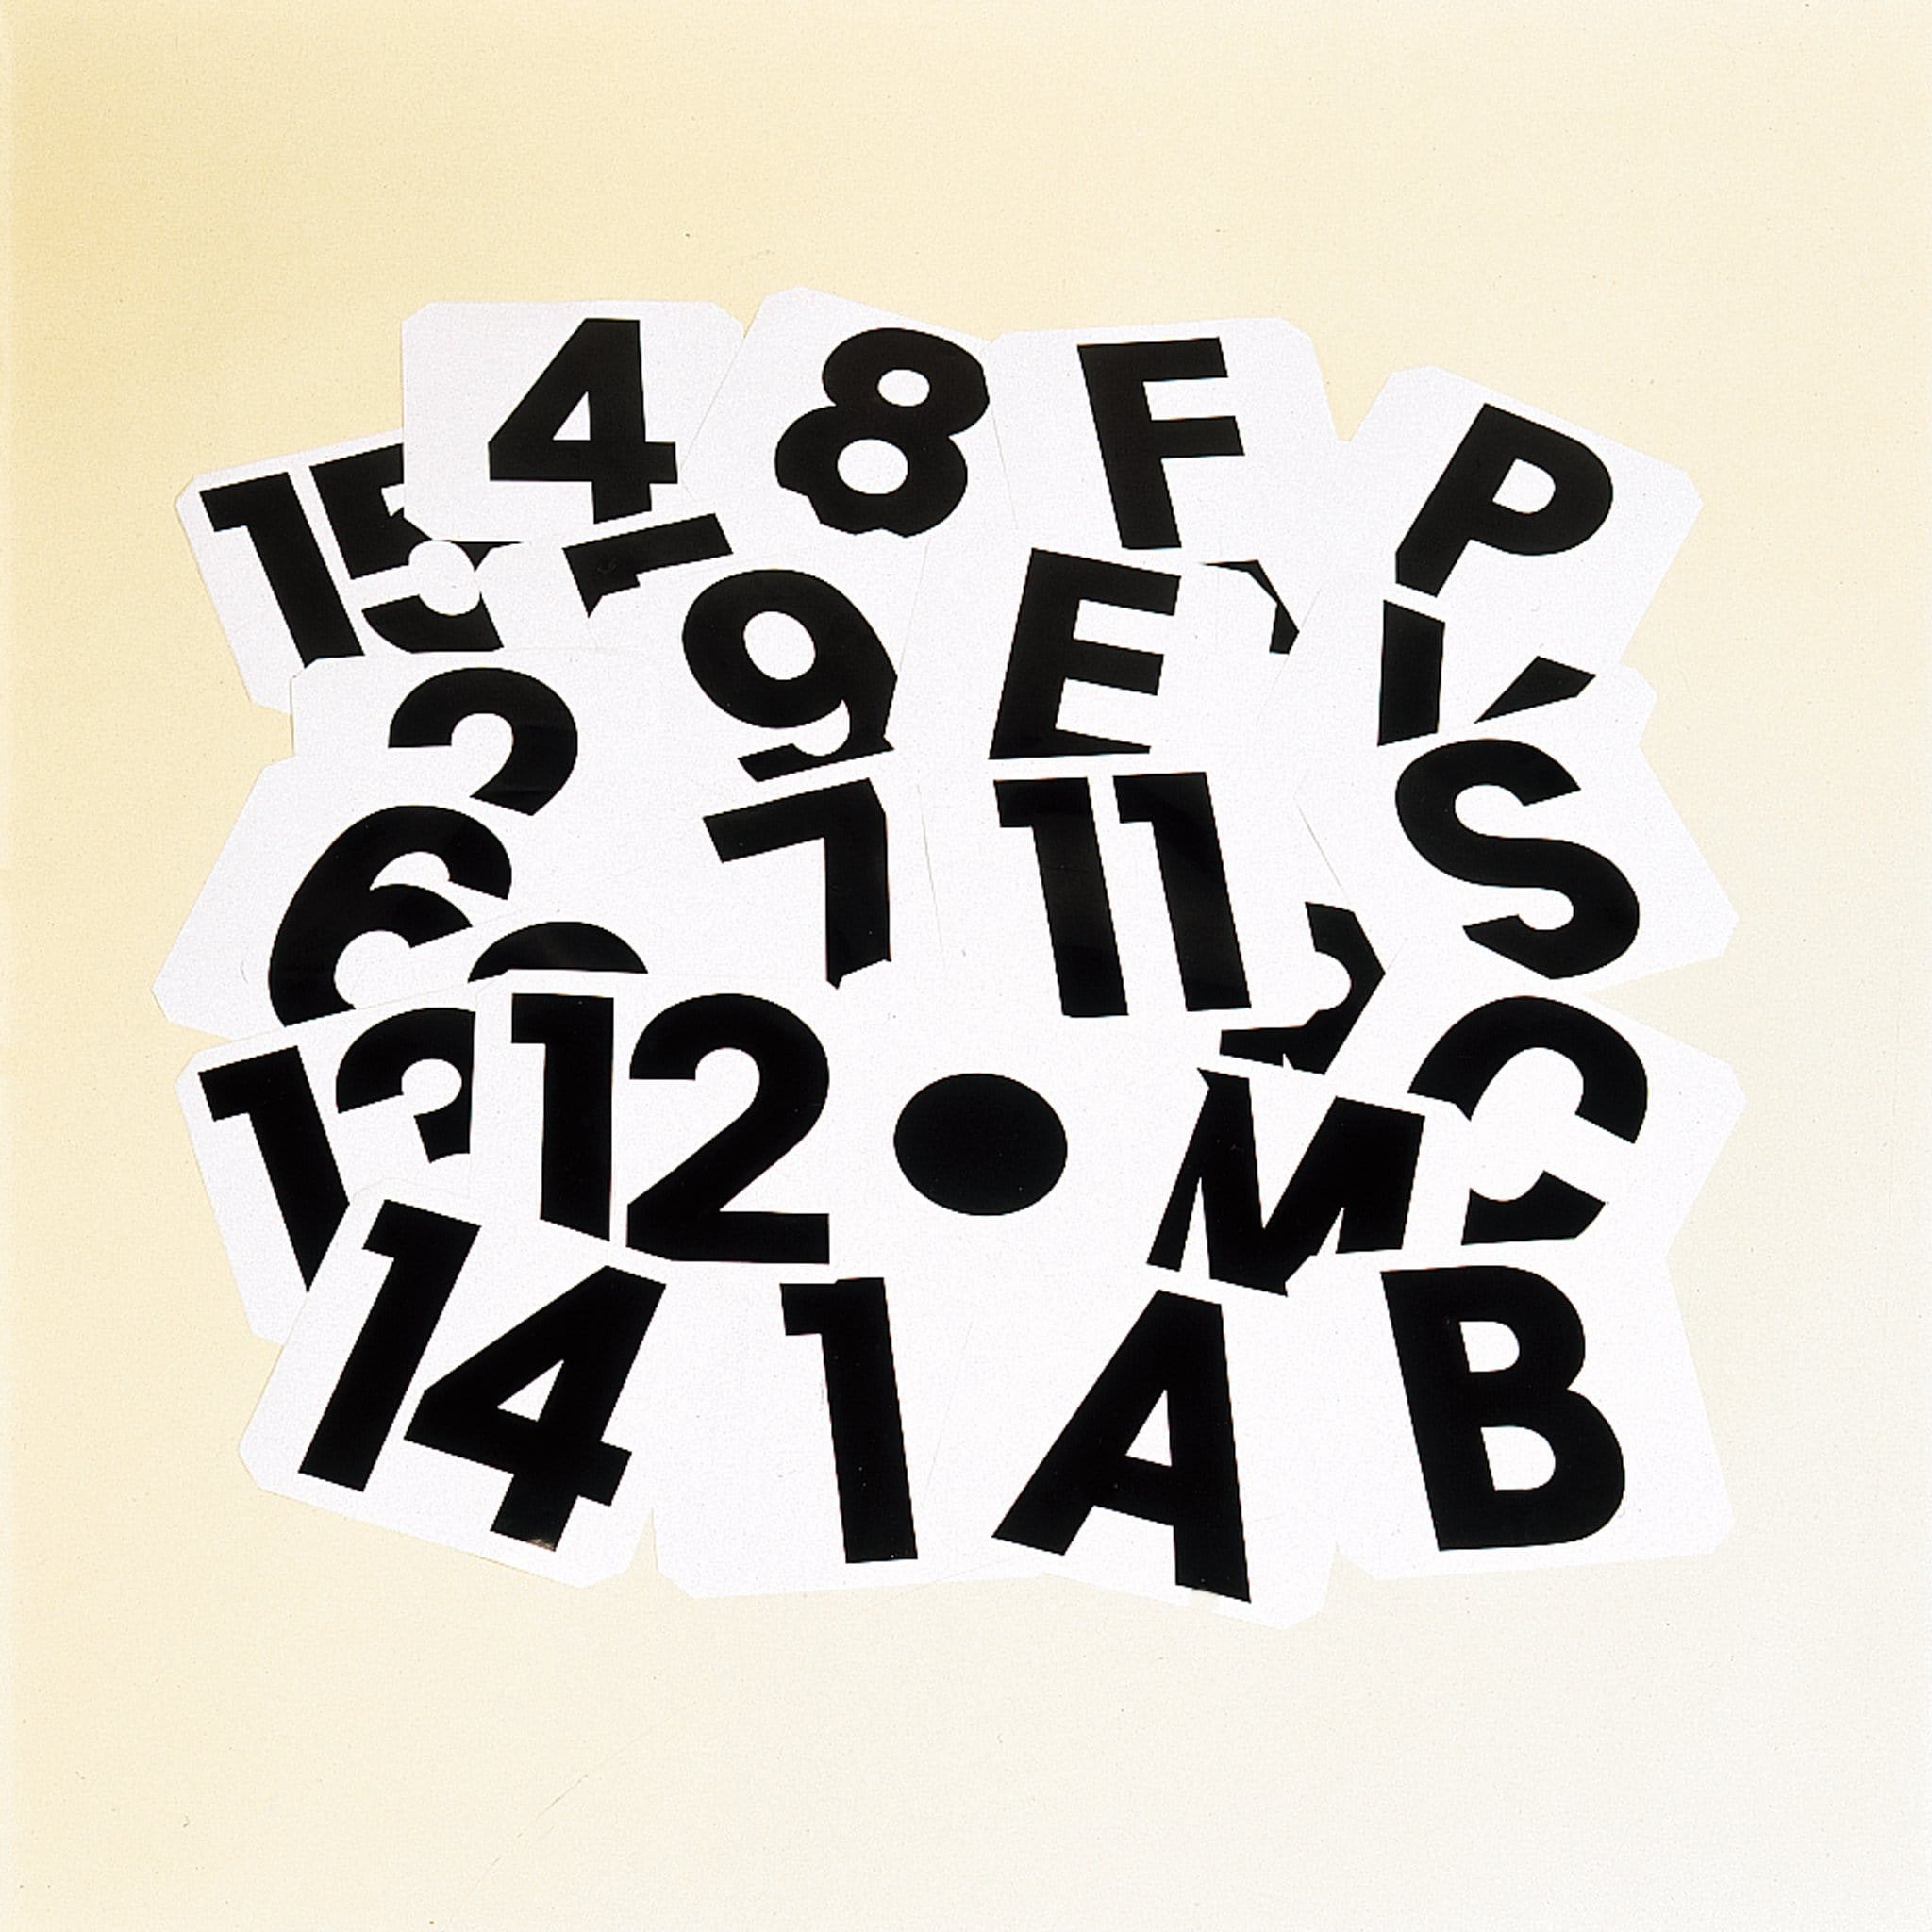 STUBBS Self Adhesive Labels Number STB1217